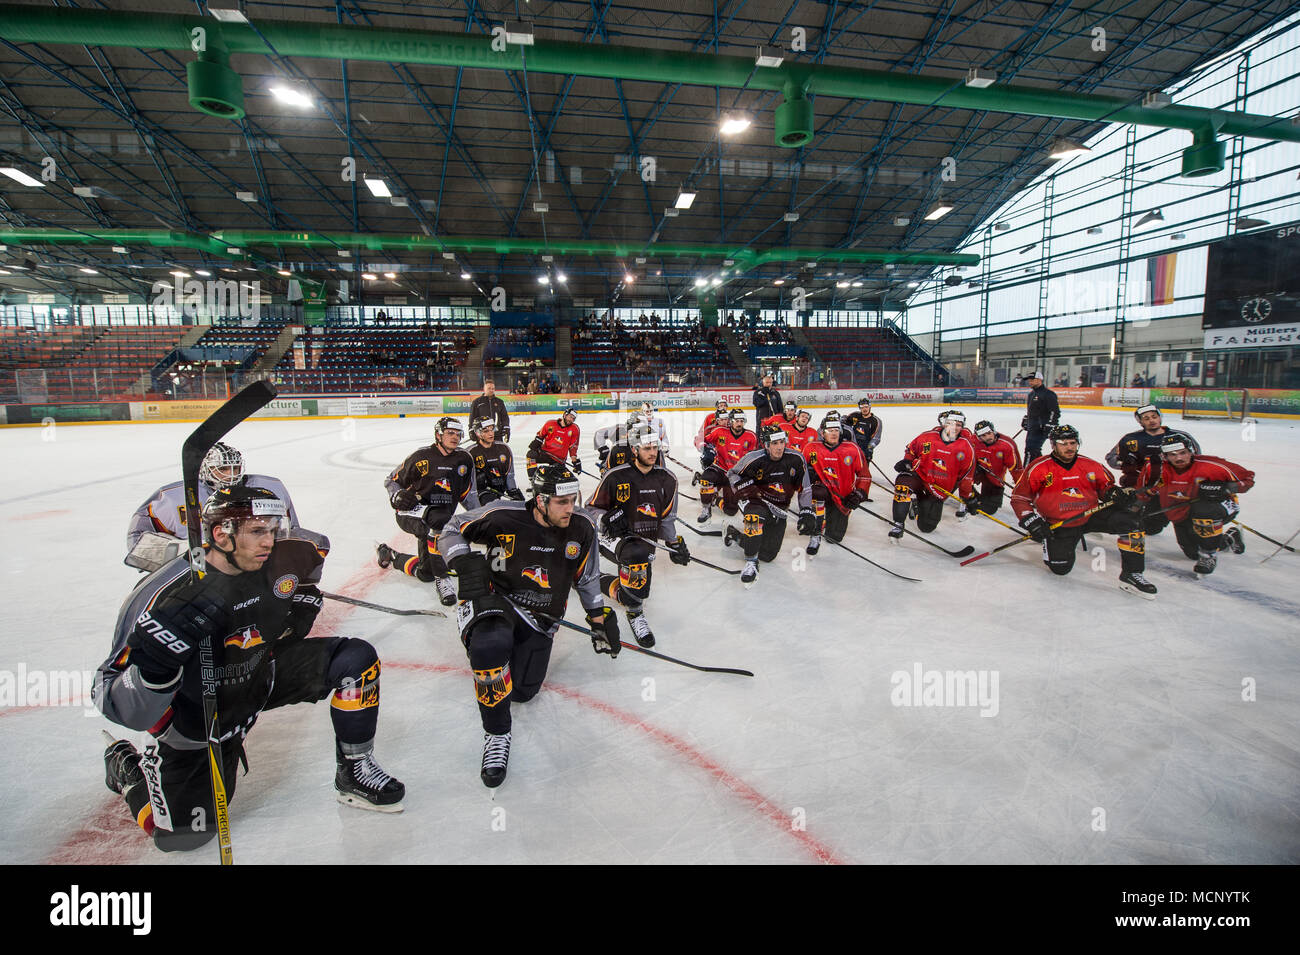 17 April 2018, Germany, Berlin: The Germany ice hockey team training at the Wellblechpalast ice hockey arena. Germany face France on 21 April. Photo: Arne Bänsch/dpa - Stock Image